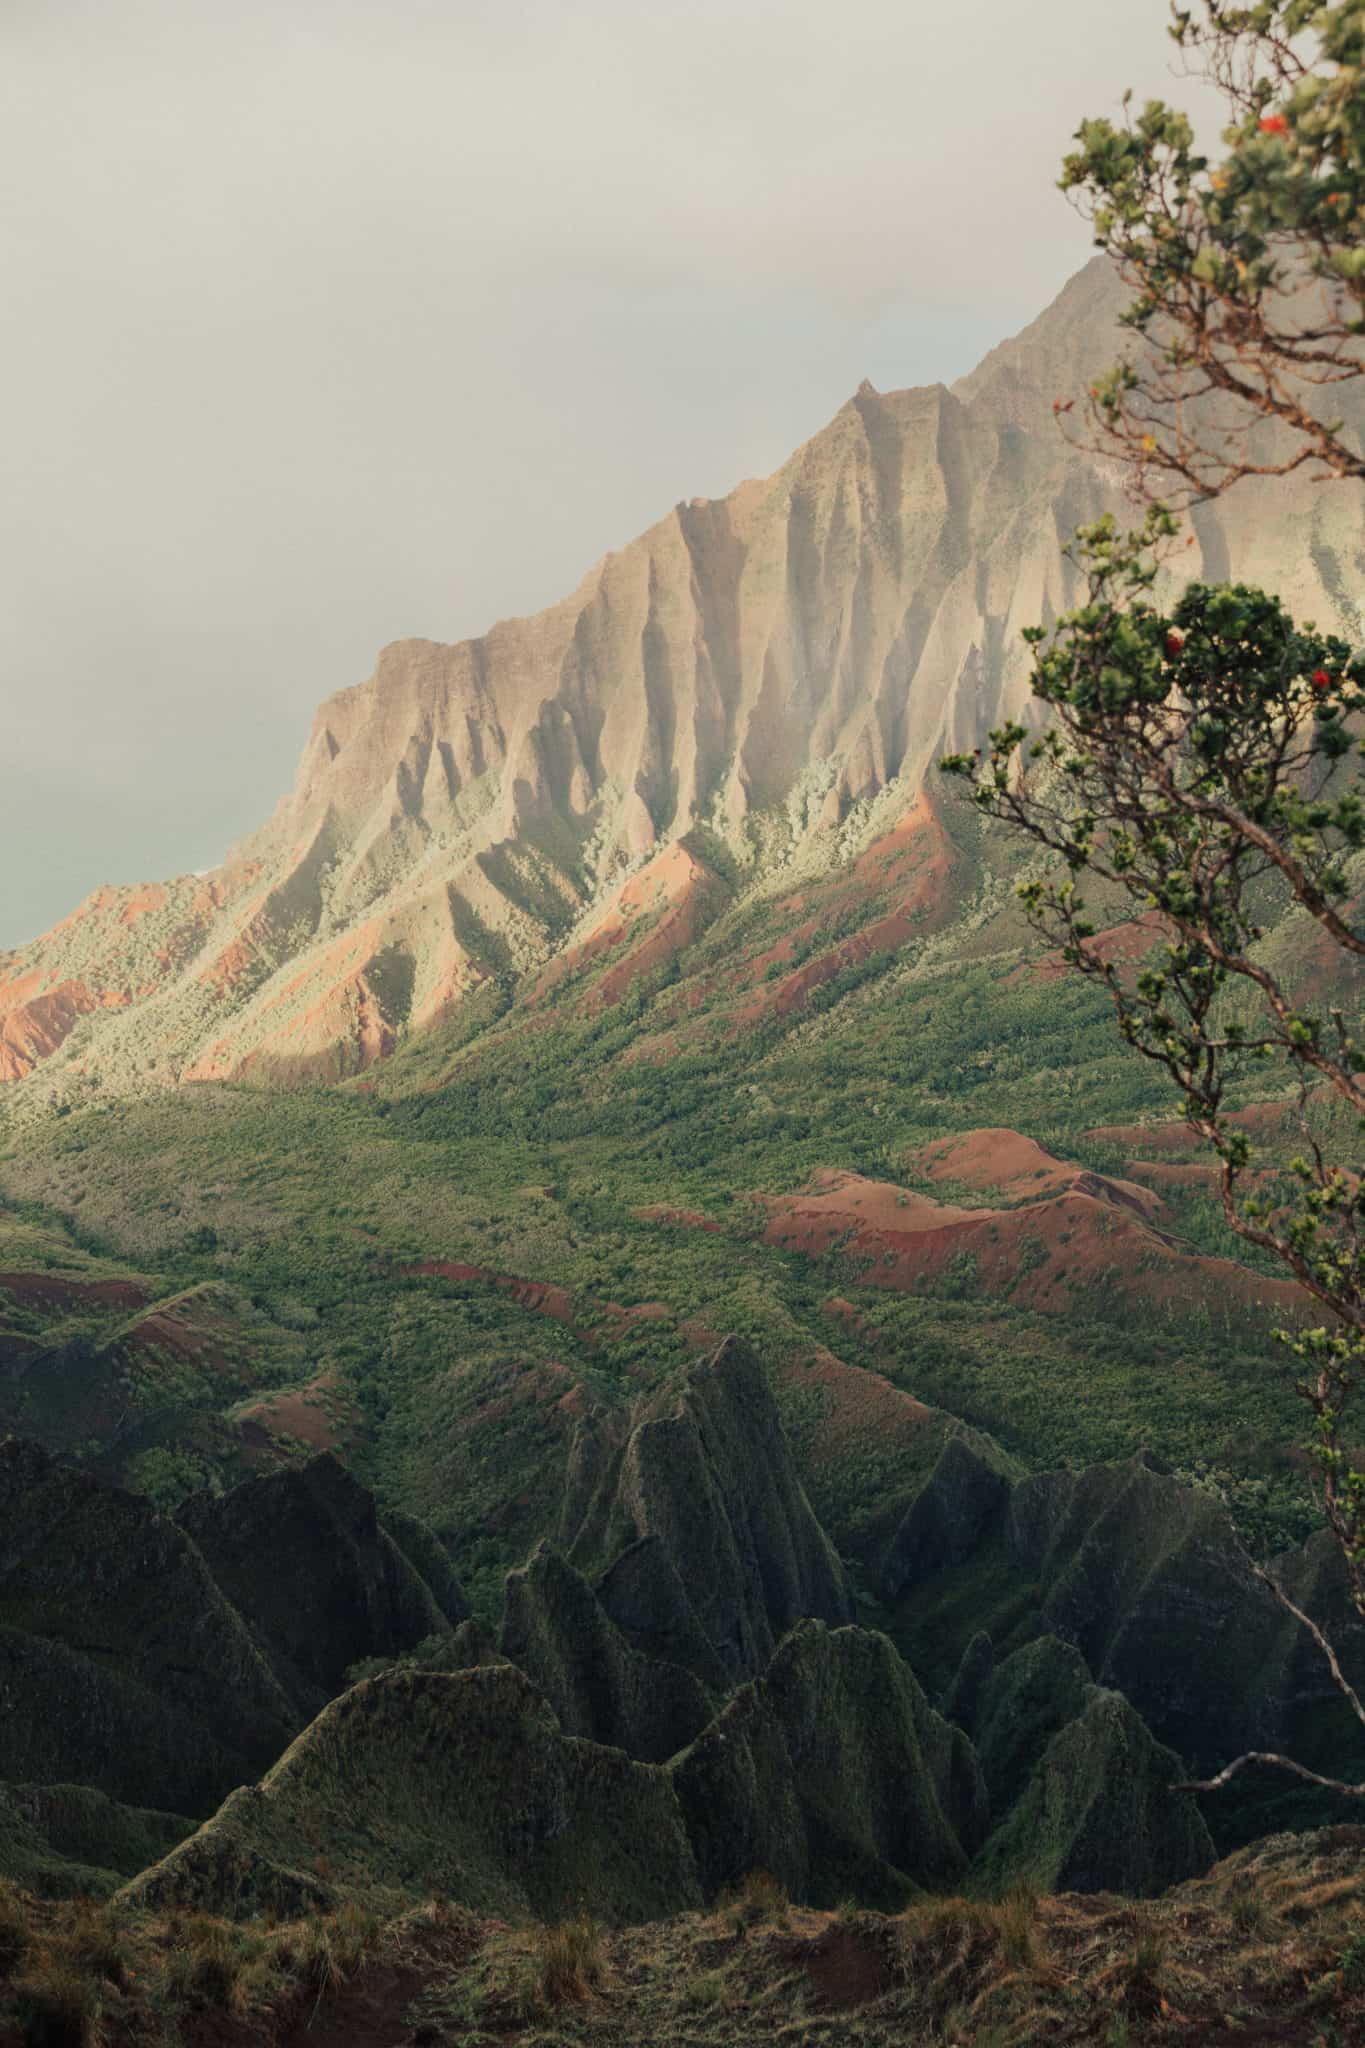 11 Adventurous Things To Do In Kauai